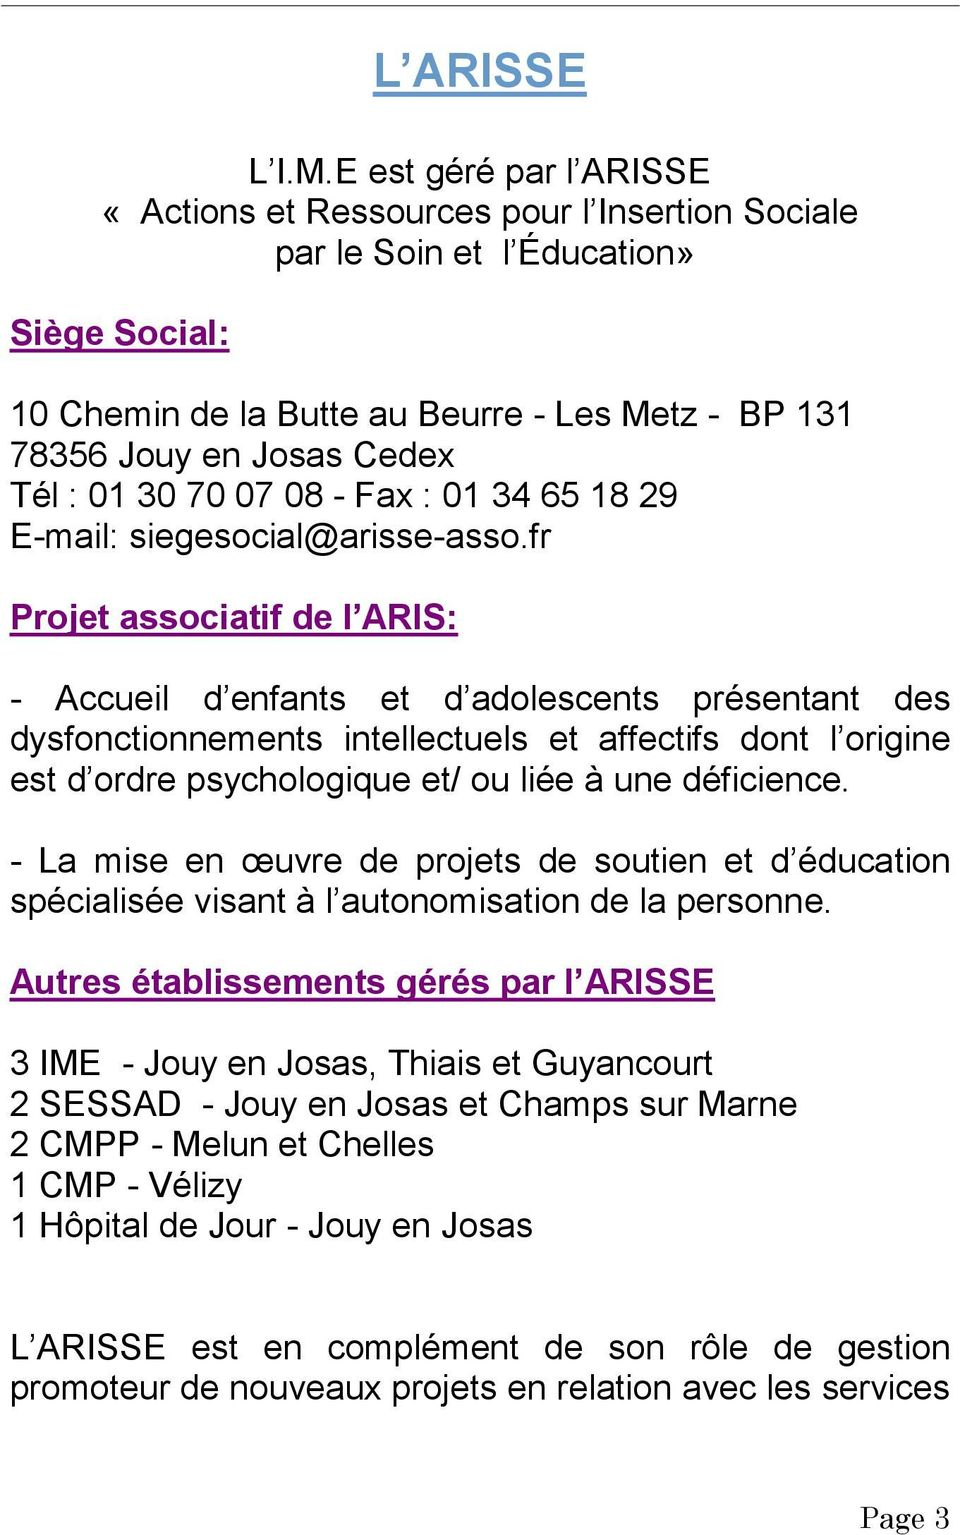 01 30 70 07 08 - Fax : 01 34 65 18 29 E-mail: siegesocial@arisse-asso.